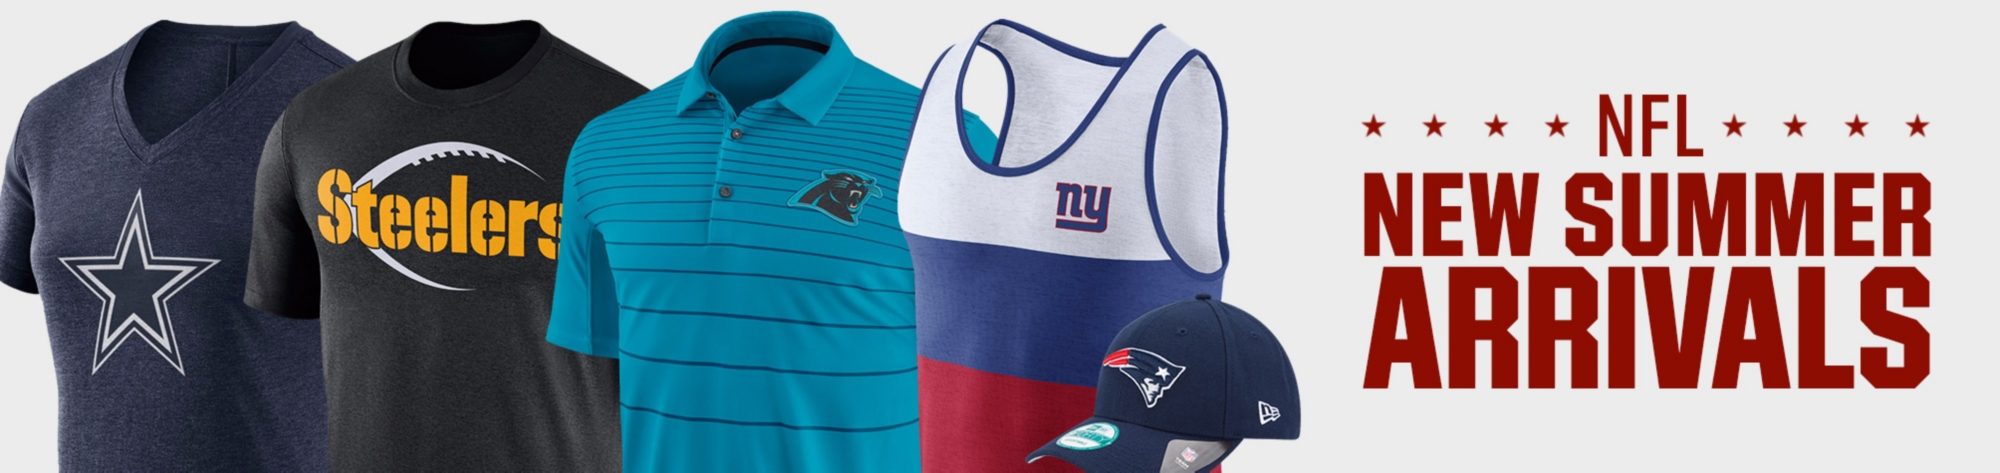 NFL New Arrivals